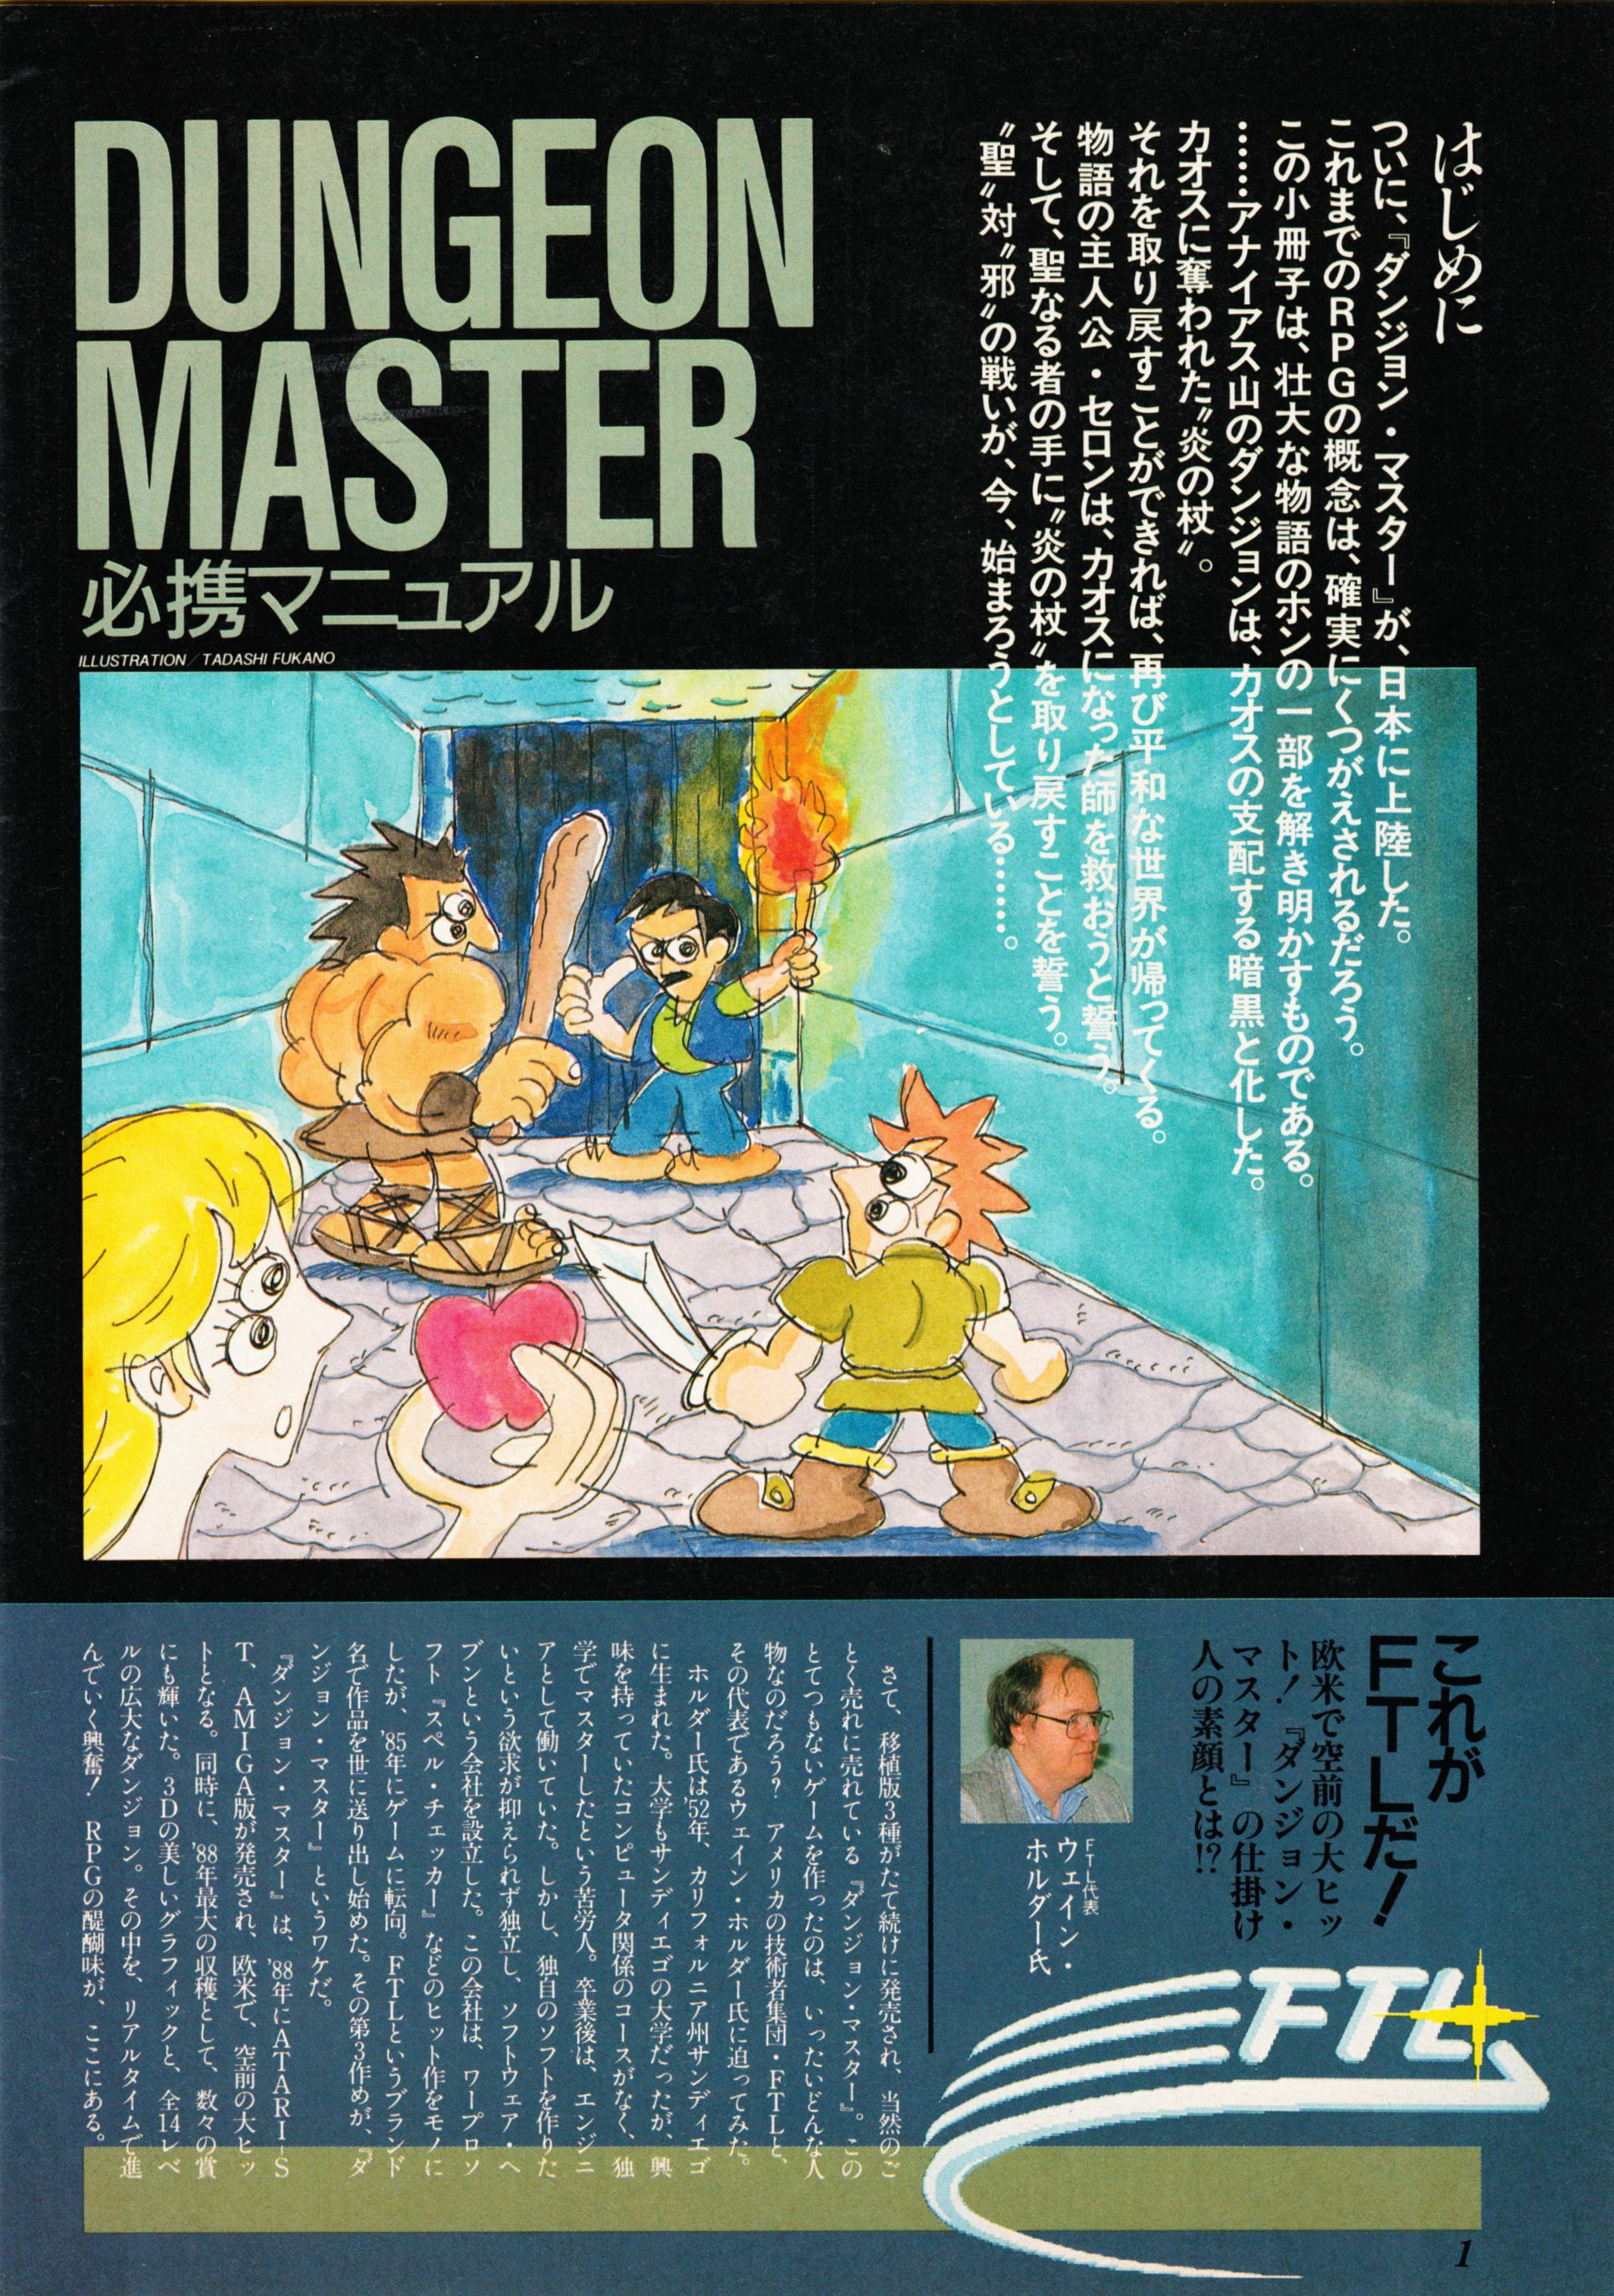 Supplement - Dungeon Master Companion Manual Guide published in Japanese magazine 'Popcom', Vol 4 No 1 01 April 1990, Page 3